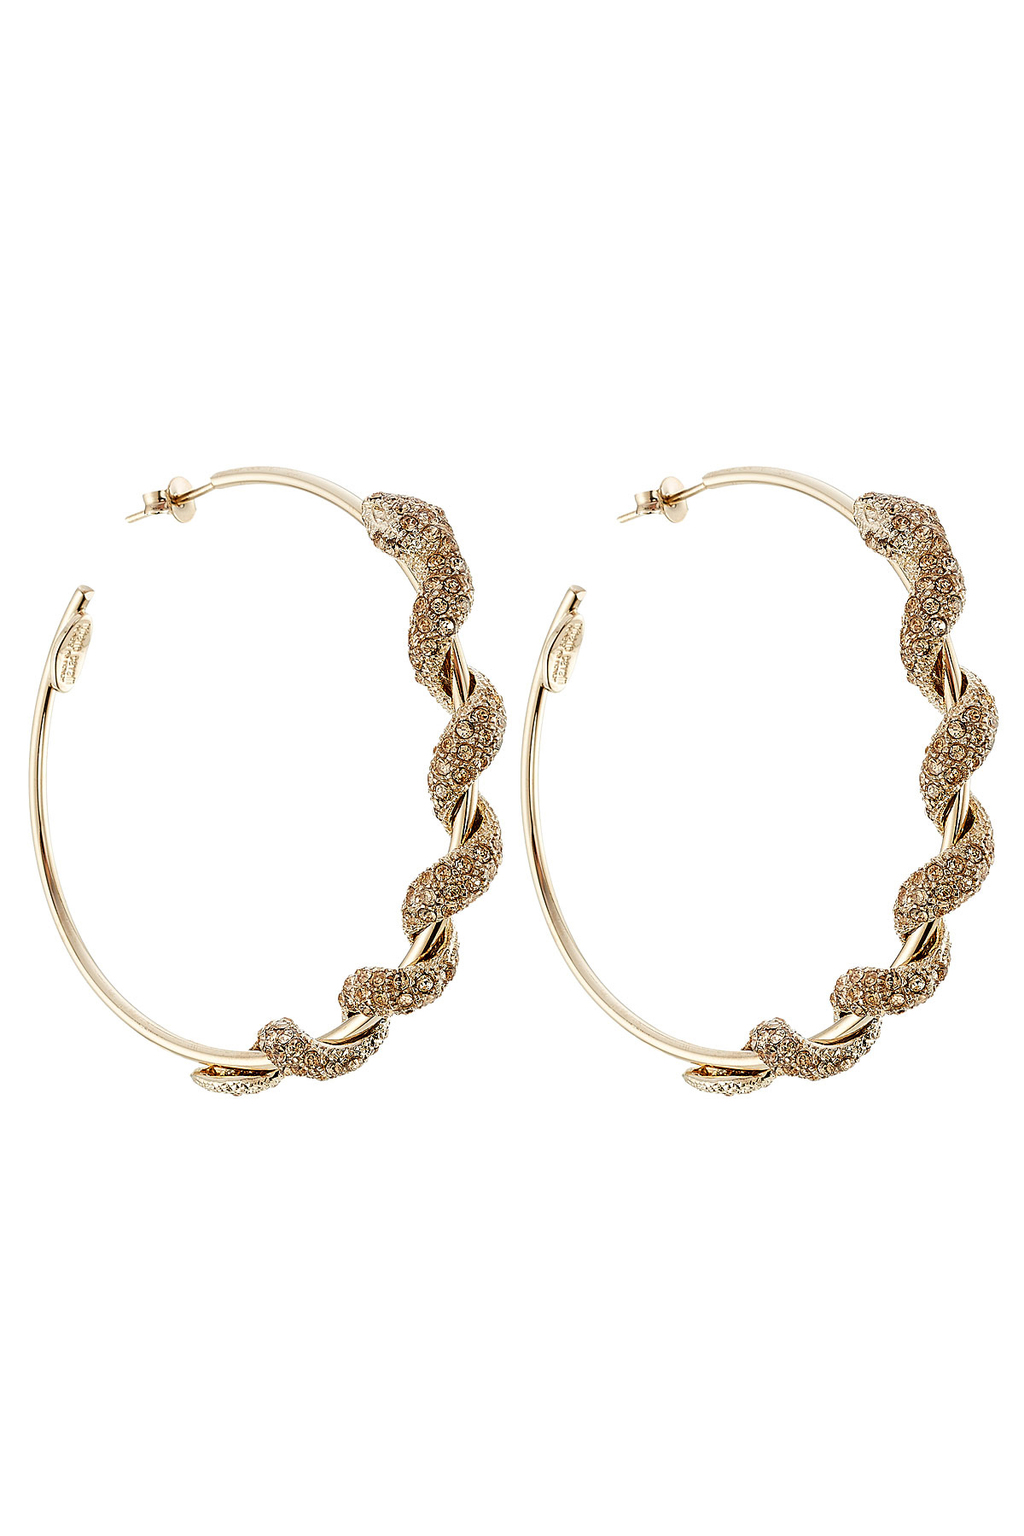 Embellished Hoop Earrings Gold - predominant colour: gold; occasions: evening; style: hoop; length: mid; size: large/oversized; material: chain/metal; fastening: pierced; finish: plain; season: s/s 2016; wardrobe: event